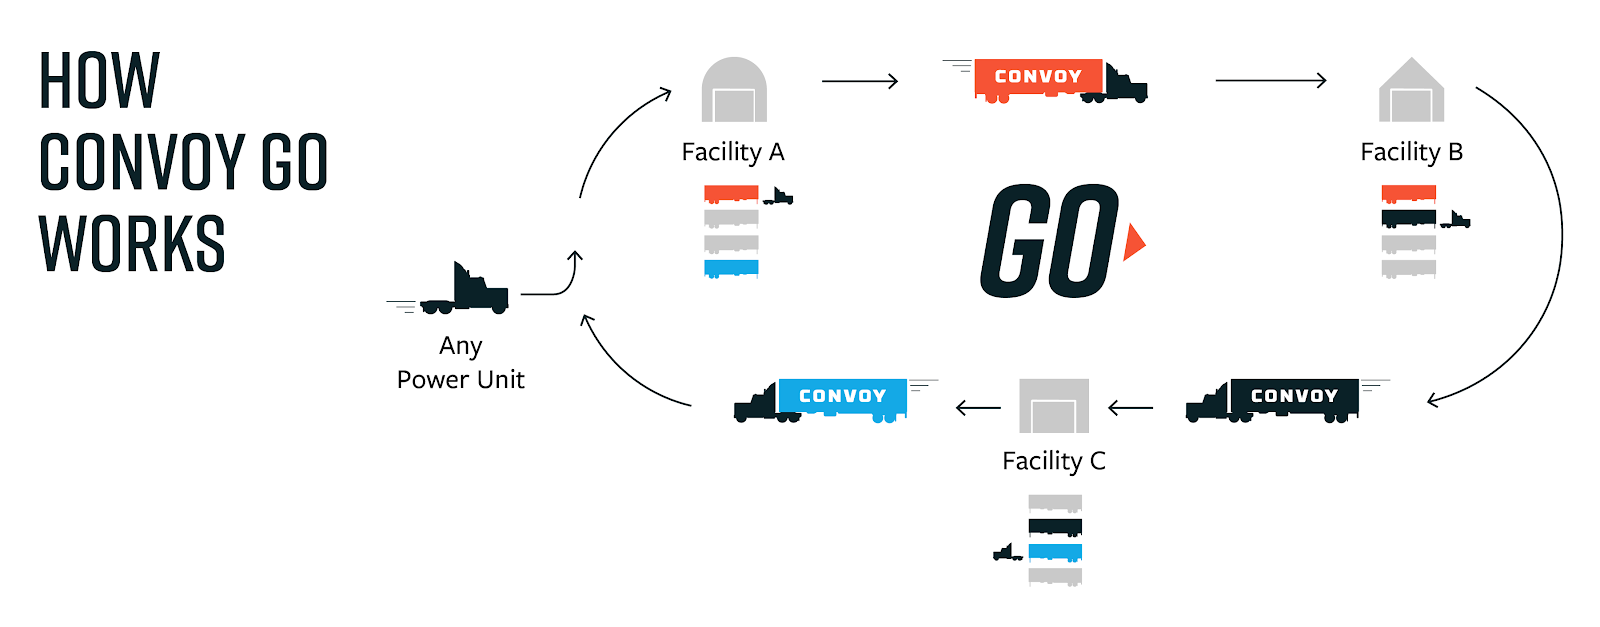 Convoy launches new marketplace to help small trucking businesses